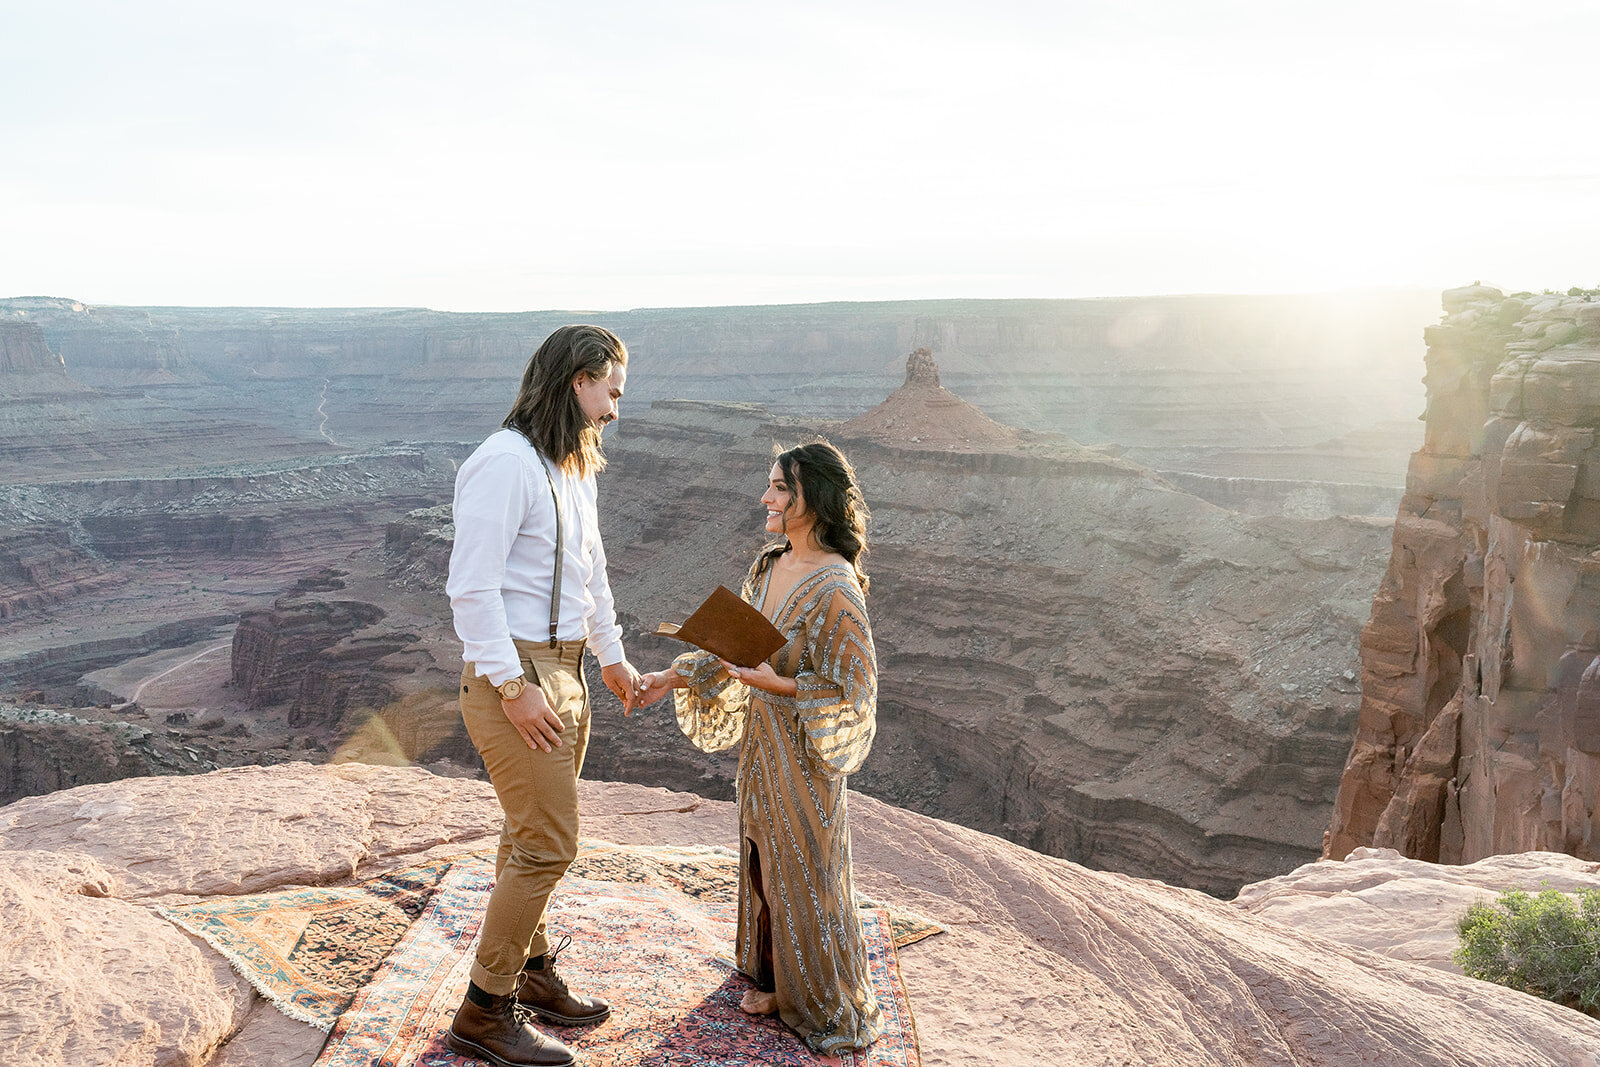 Dead Horse Point Moab Elopement Photographer - Kaci Lou Photography-05107_websize